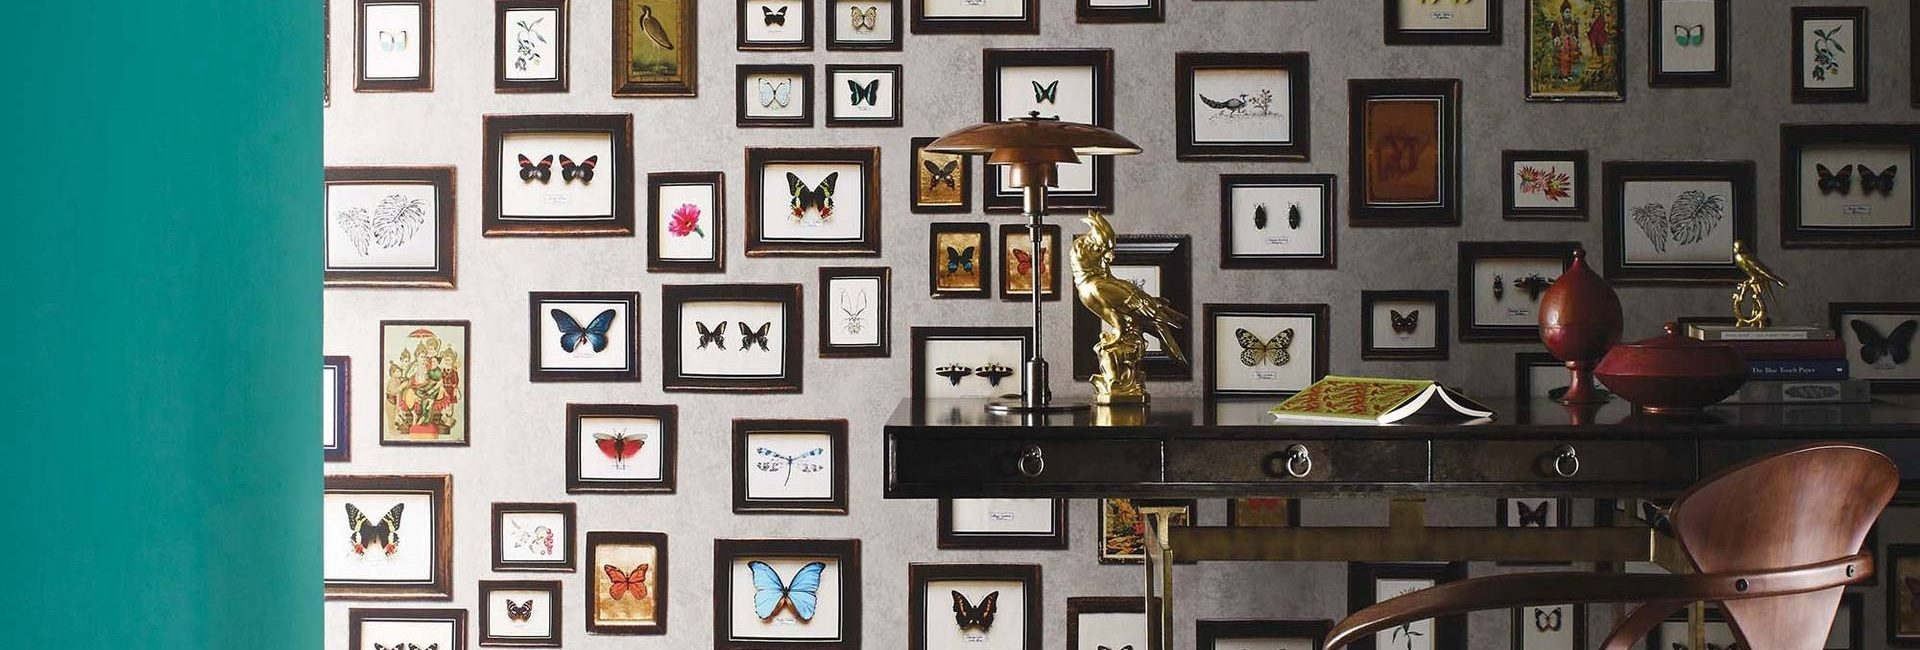 Matthew Williamson Narissa collection with butterfly wallpaper - available from Fabric Gallery and Interiors in Dunnington, York